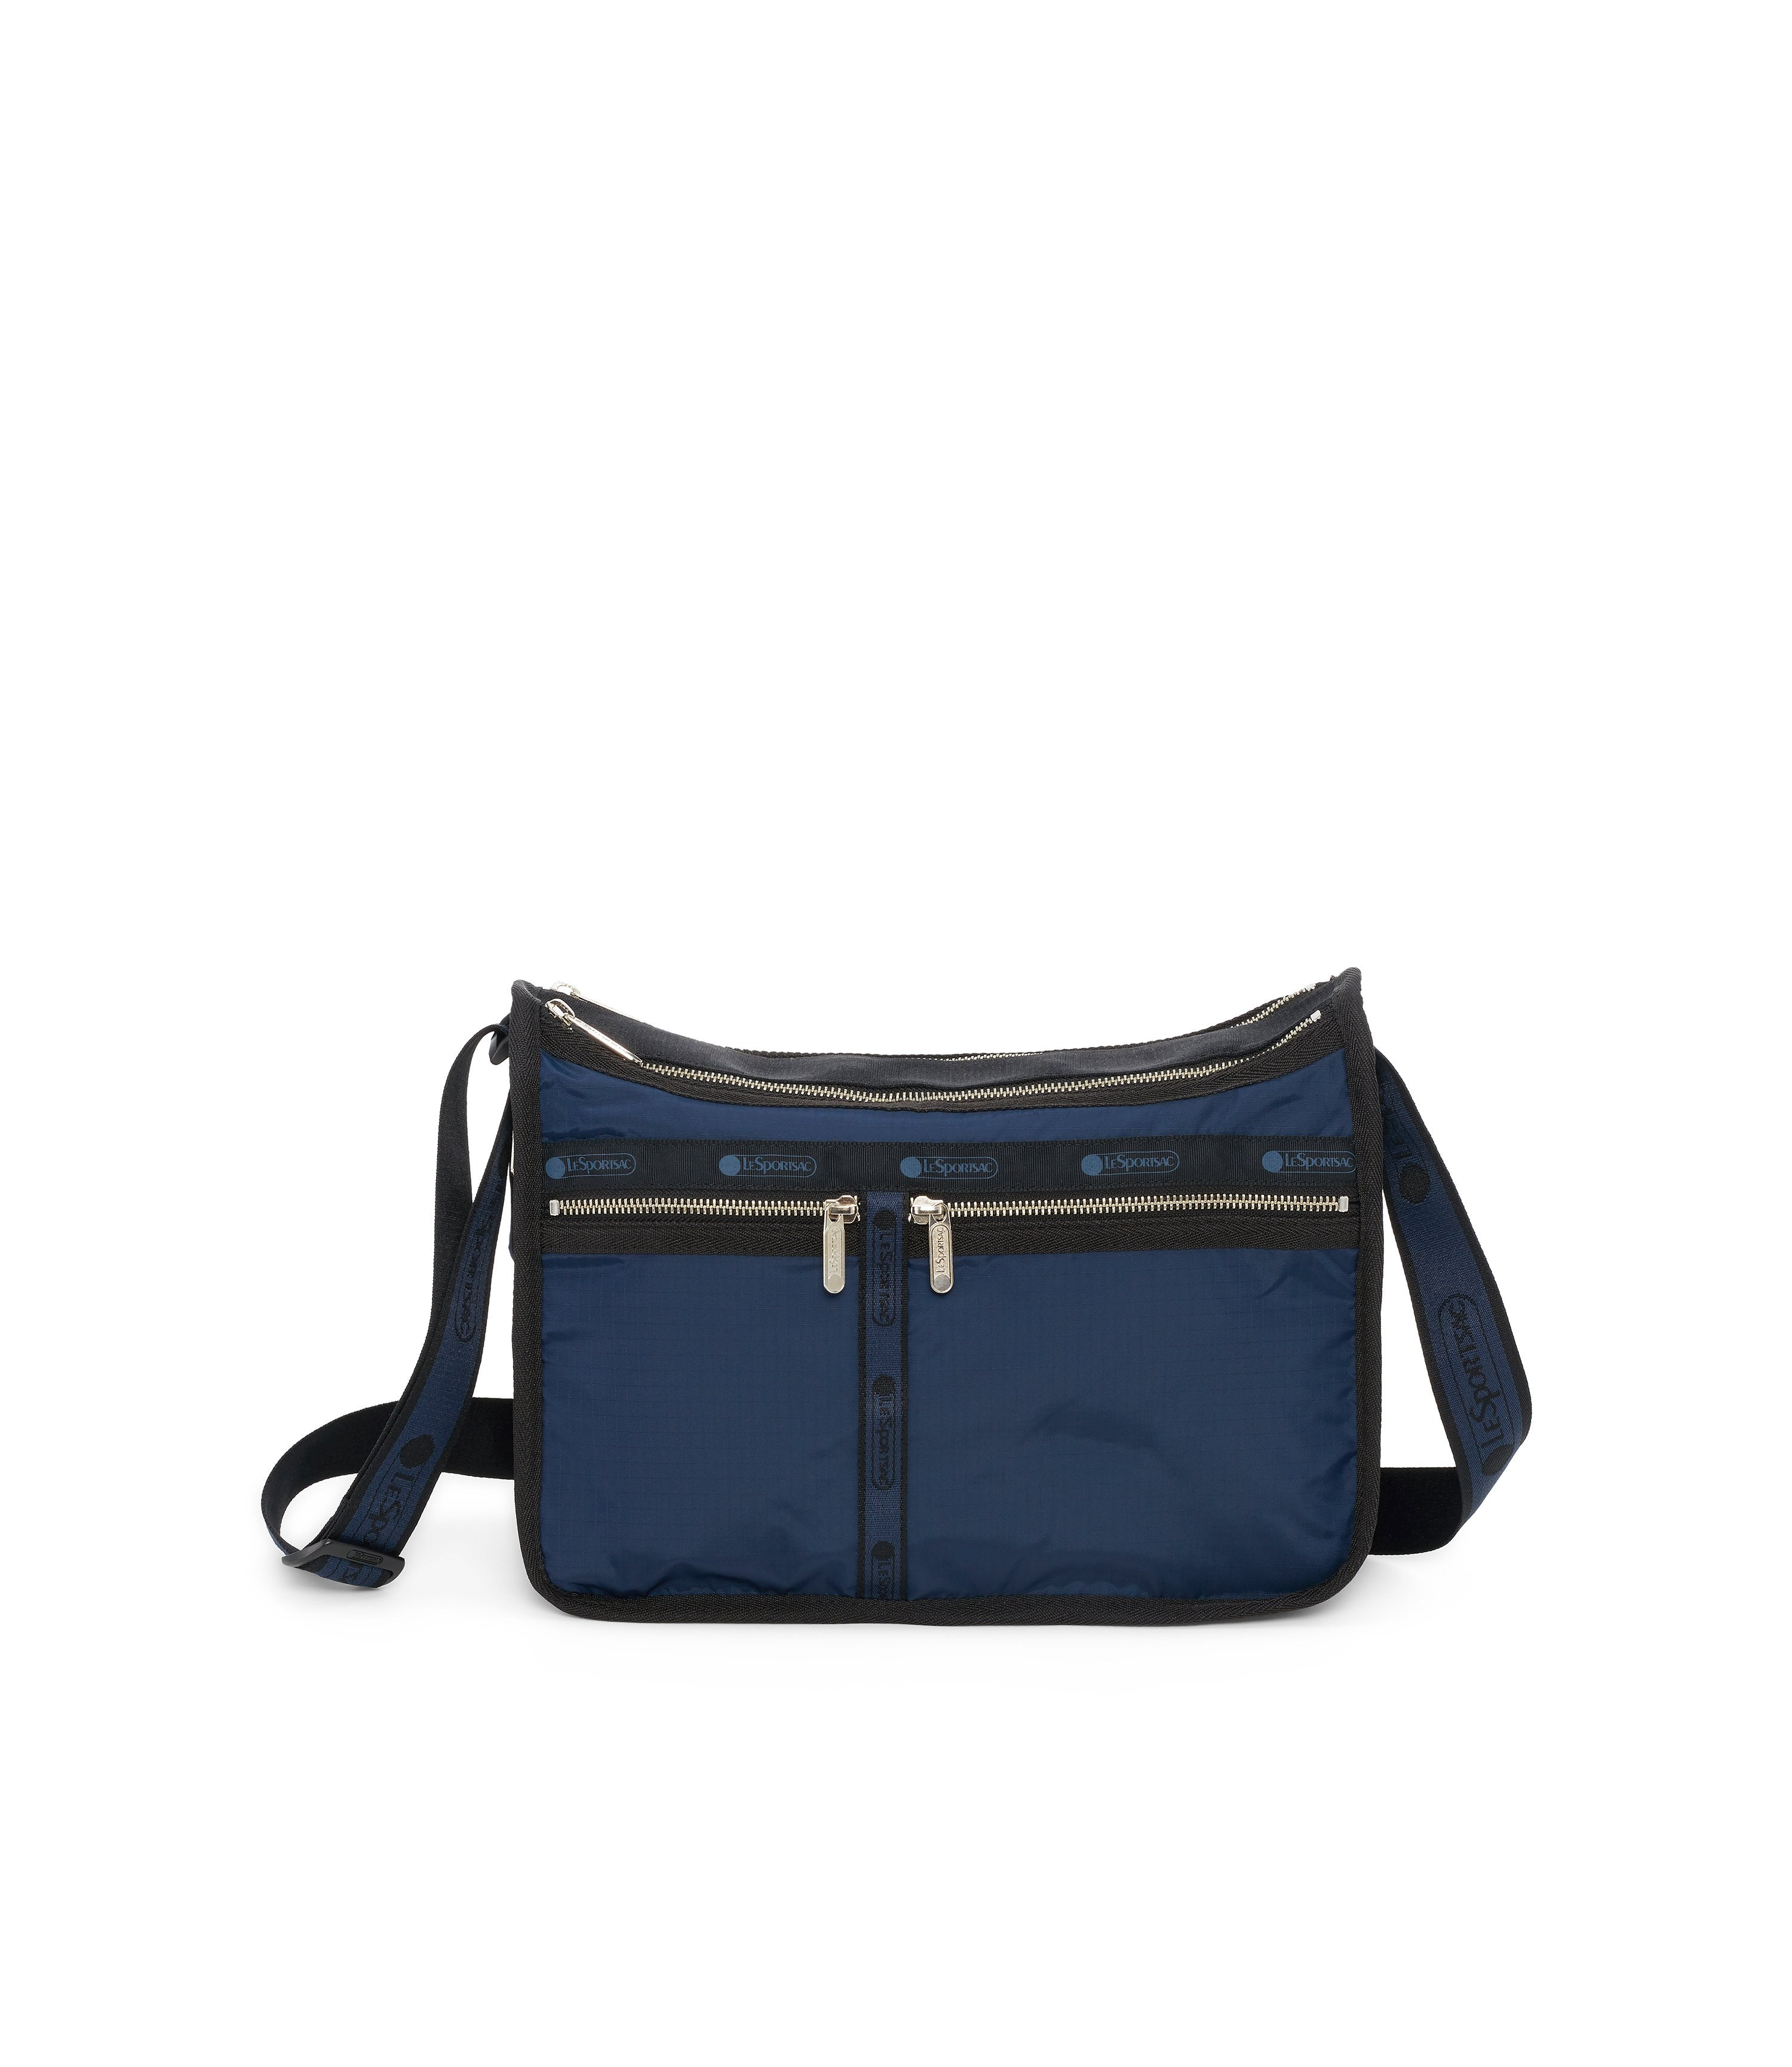 Deluxe Everyday Bag, Nylon Handbags and Classic Purses, Expandable, Crossbody, Heritage Navy